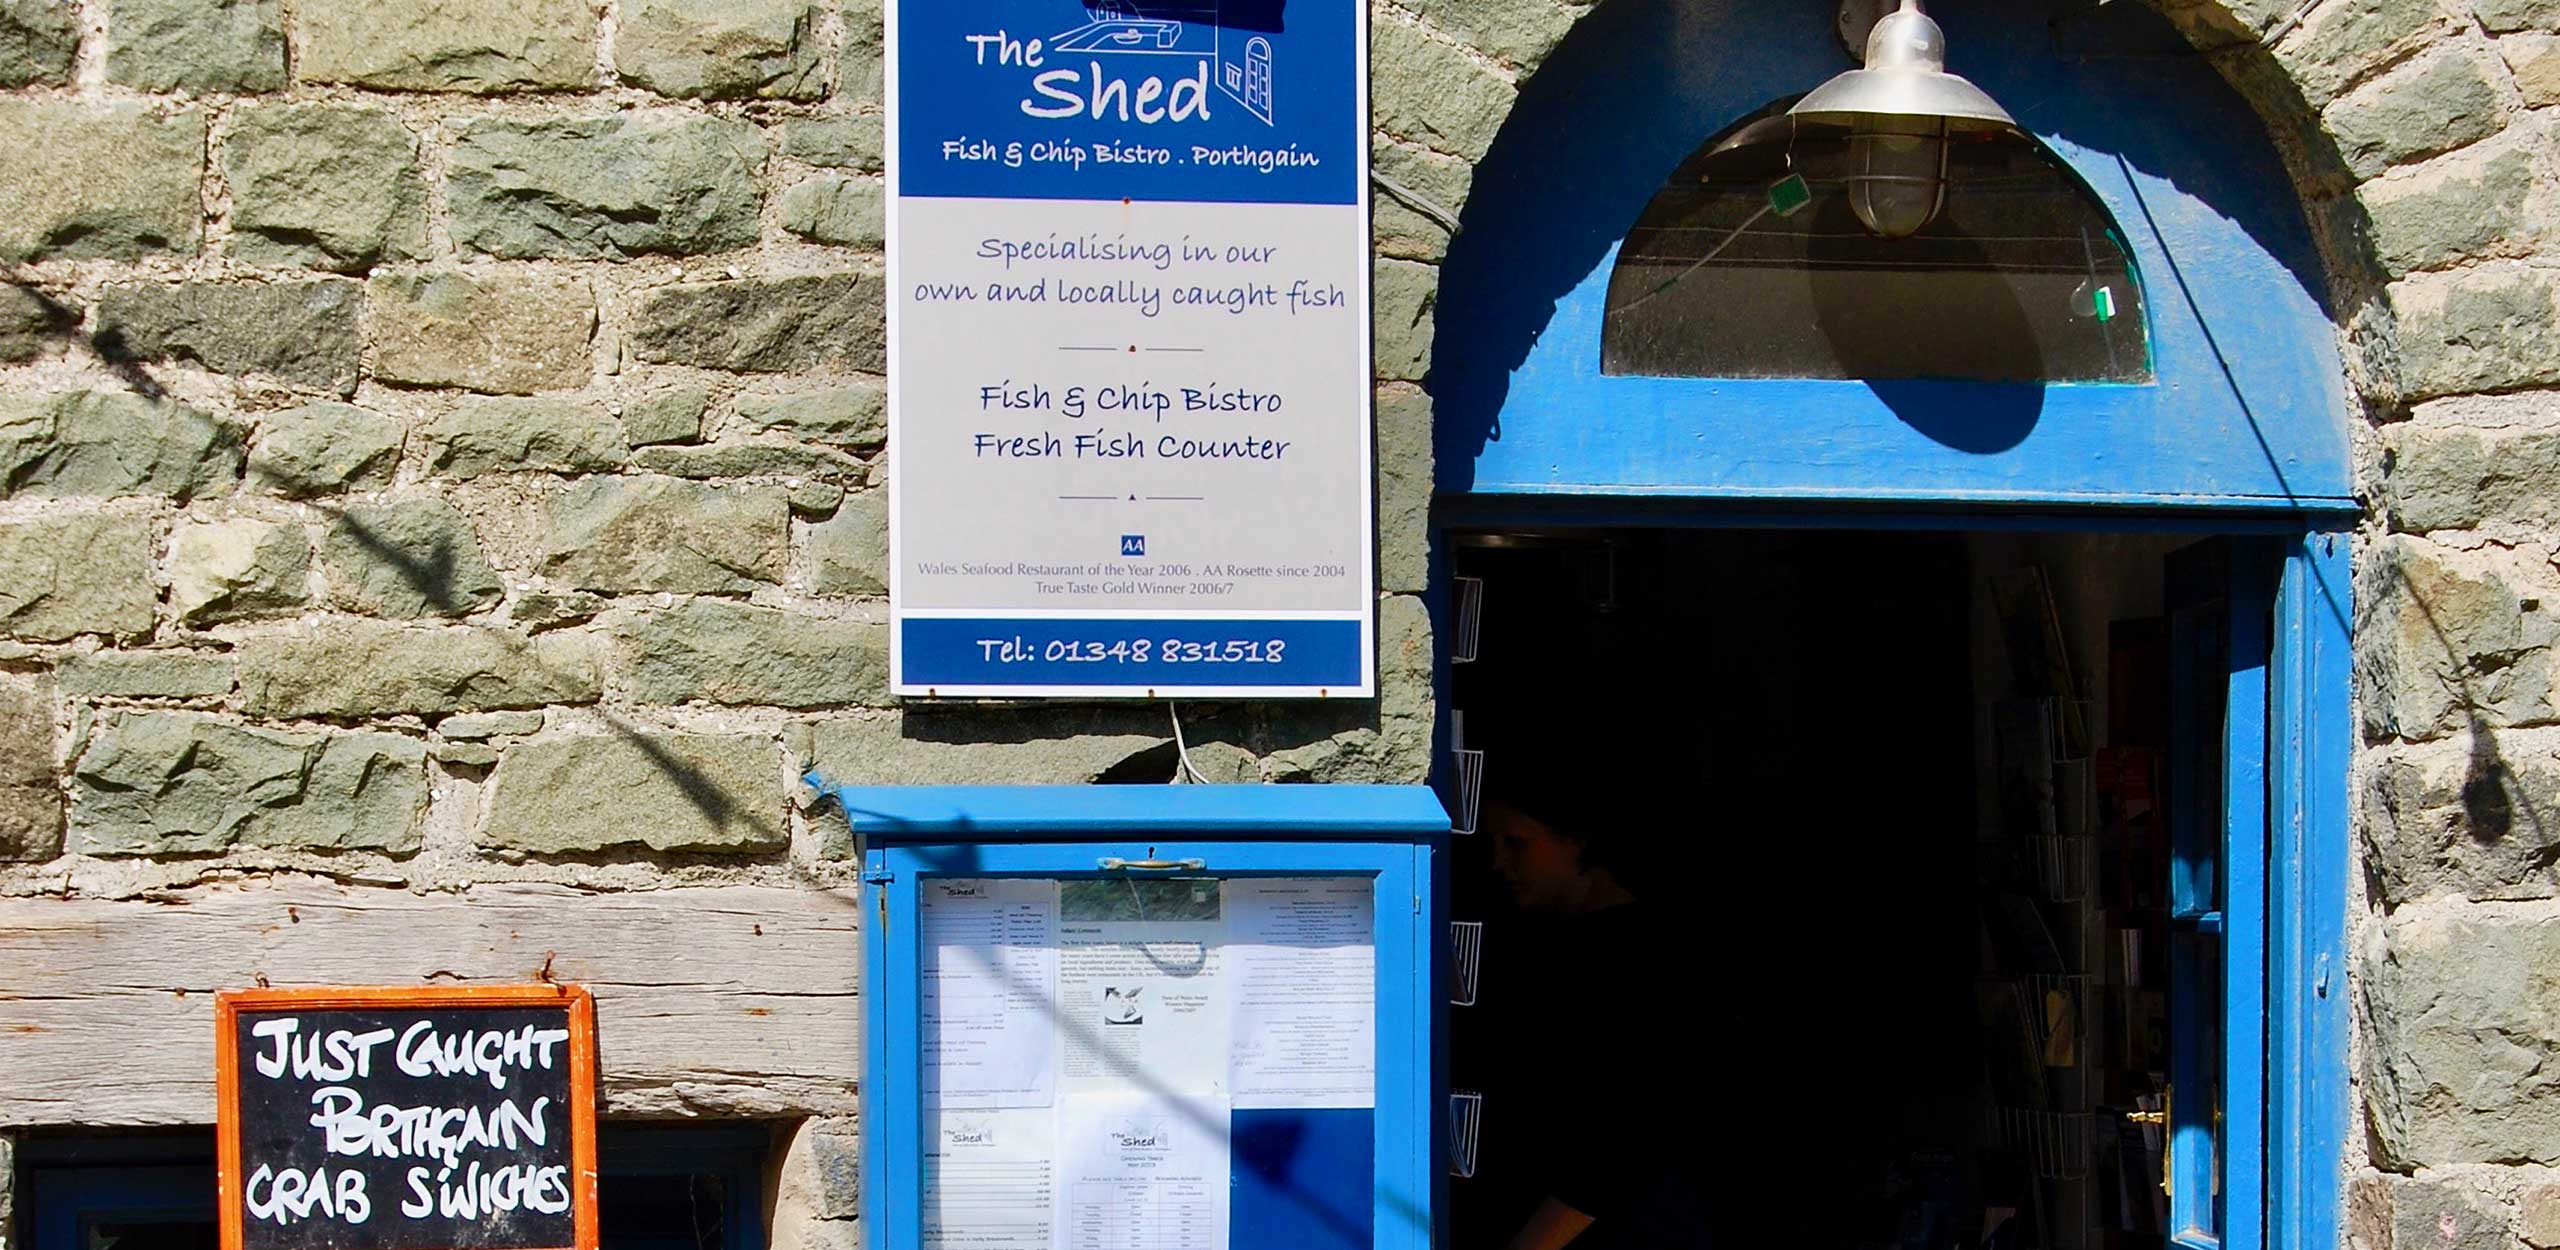 The Shed at Porthgain